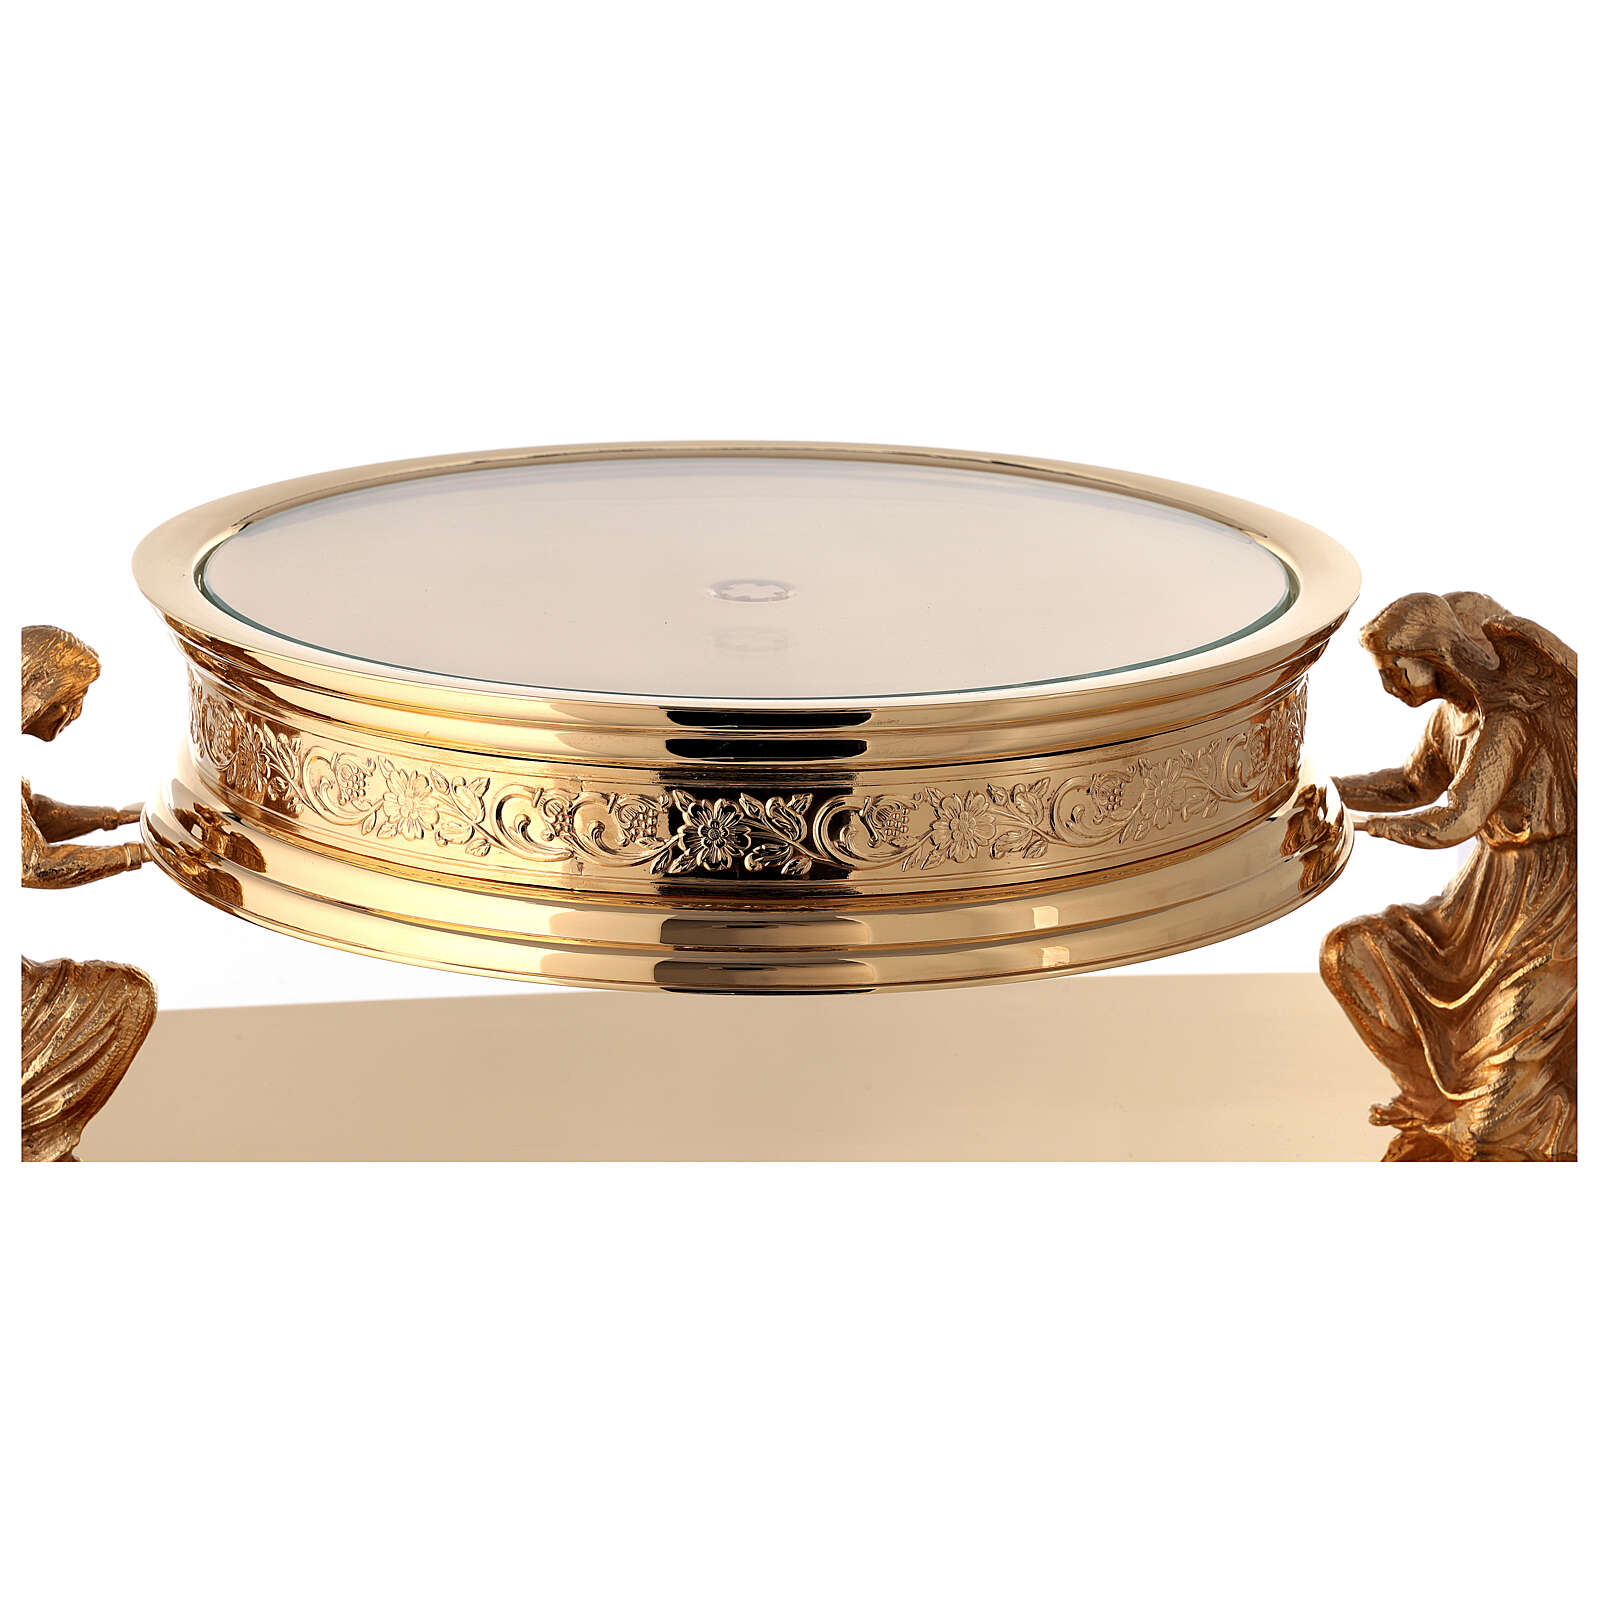 Gothic style thabor in gold-plated brass, Molina 4